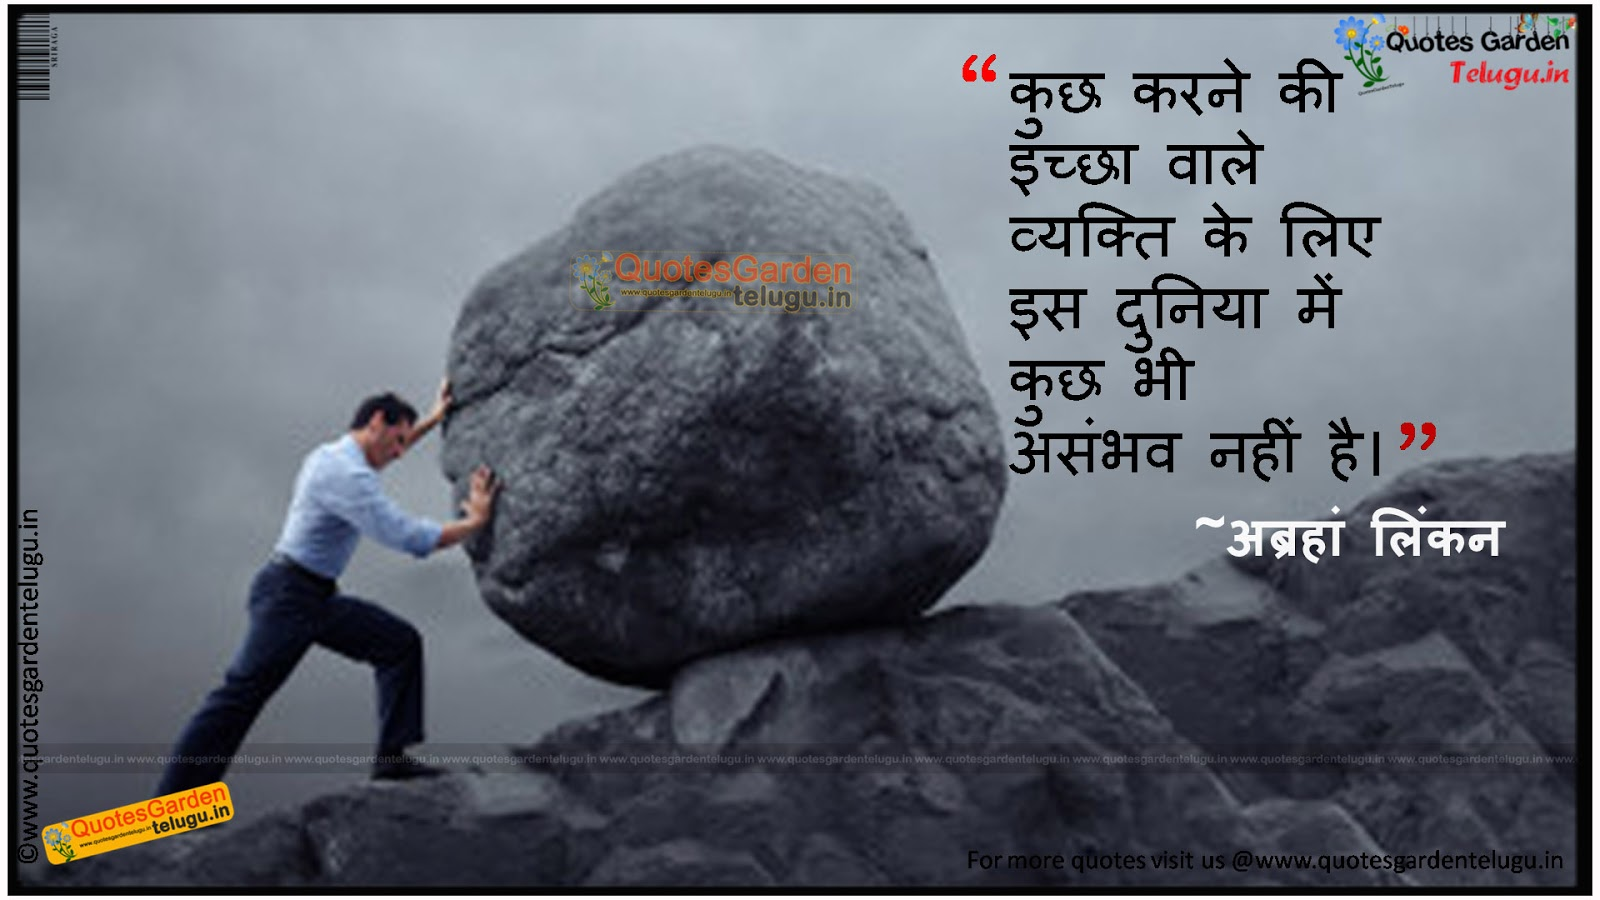 Best Motivational Quotes About Life In Hindi